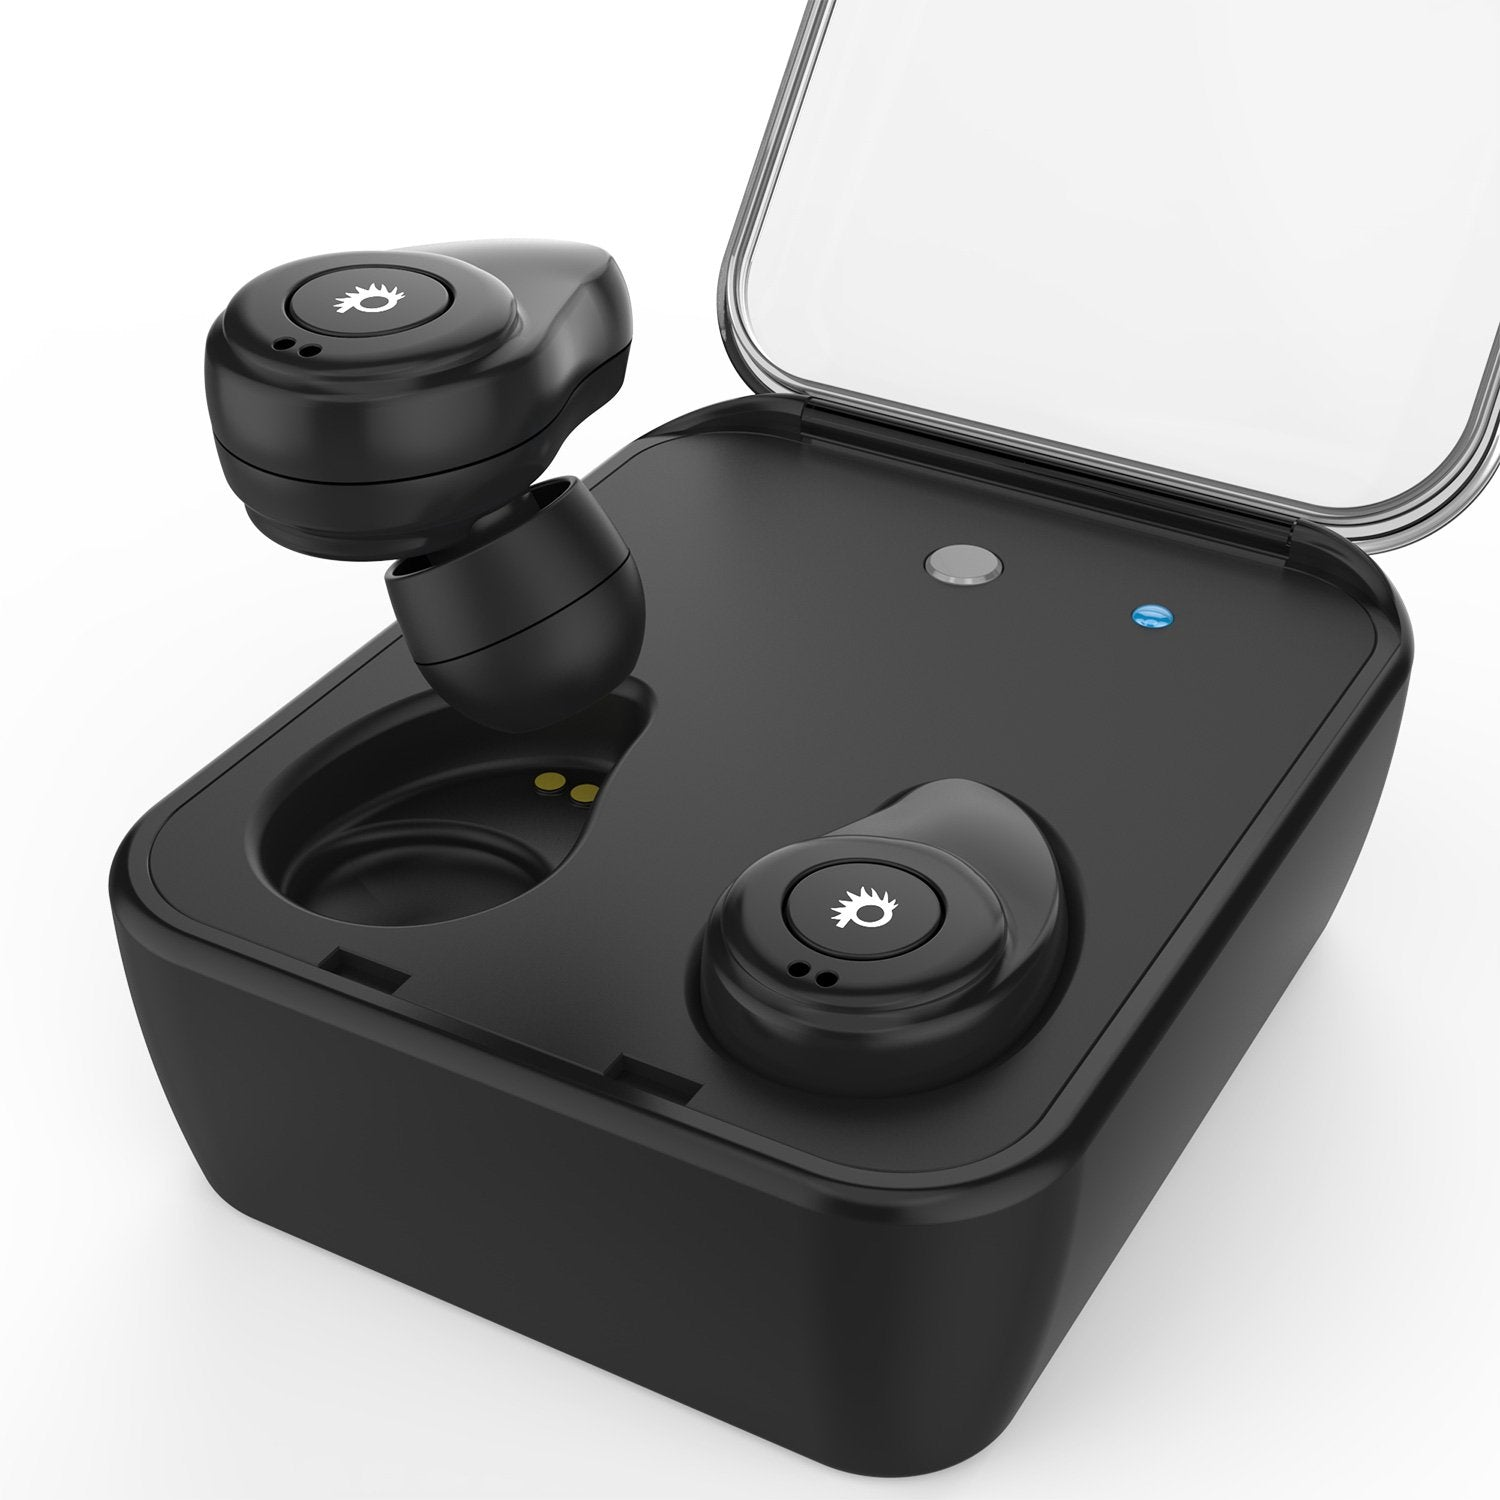 PunkBuds True Wireless Earbuds, Mini Bluetooth Headphones W/ Charging Case & Built-In Noise Cancelling Mic. [Black] - PunkCase NZ